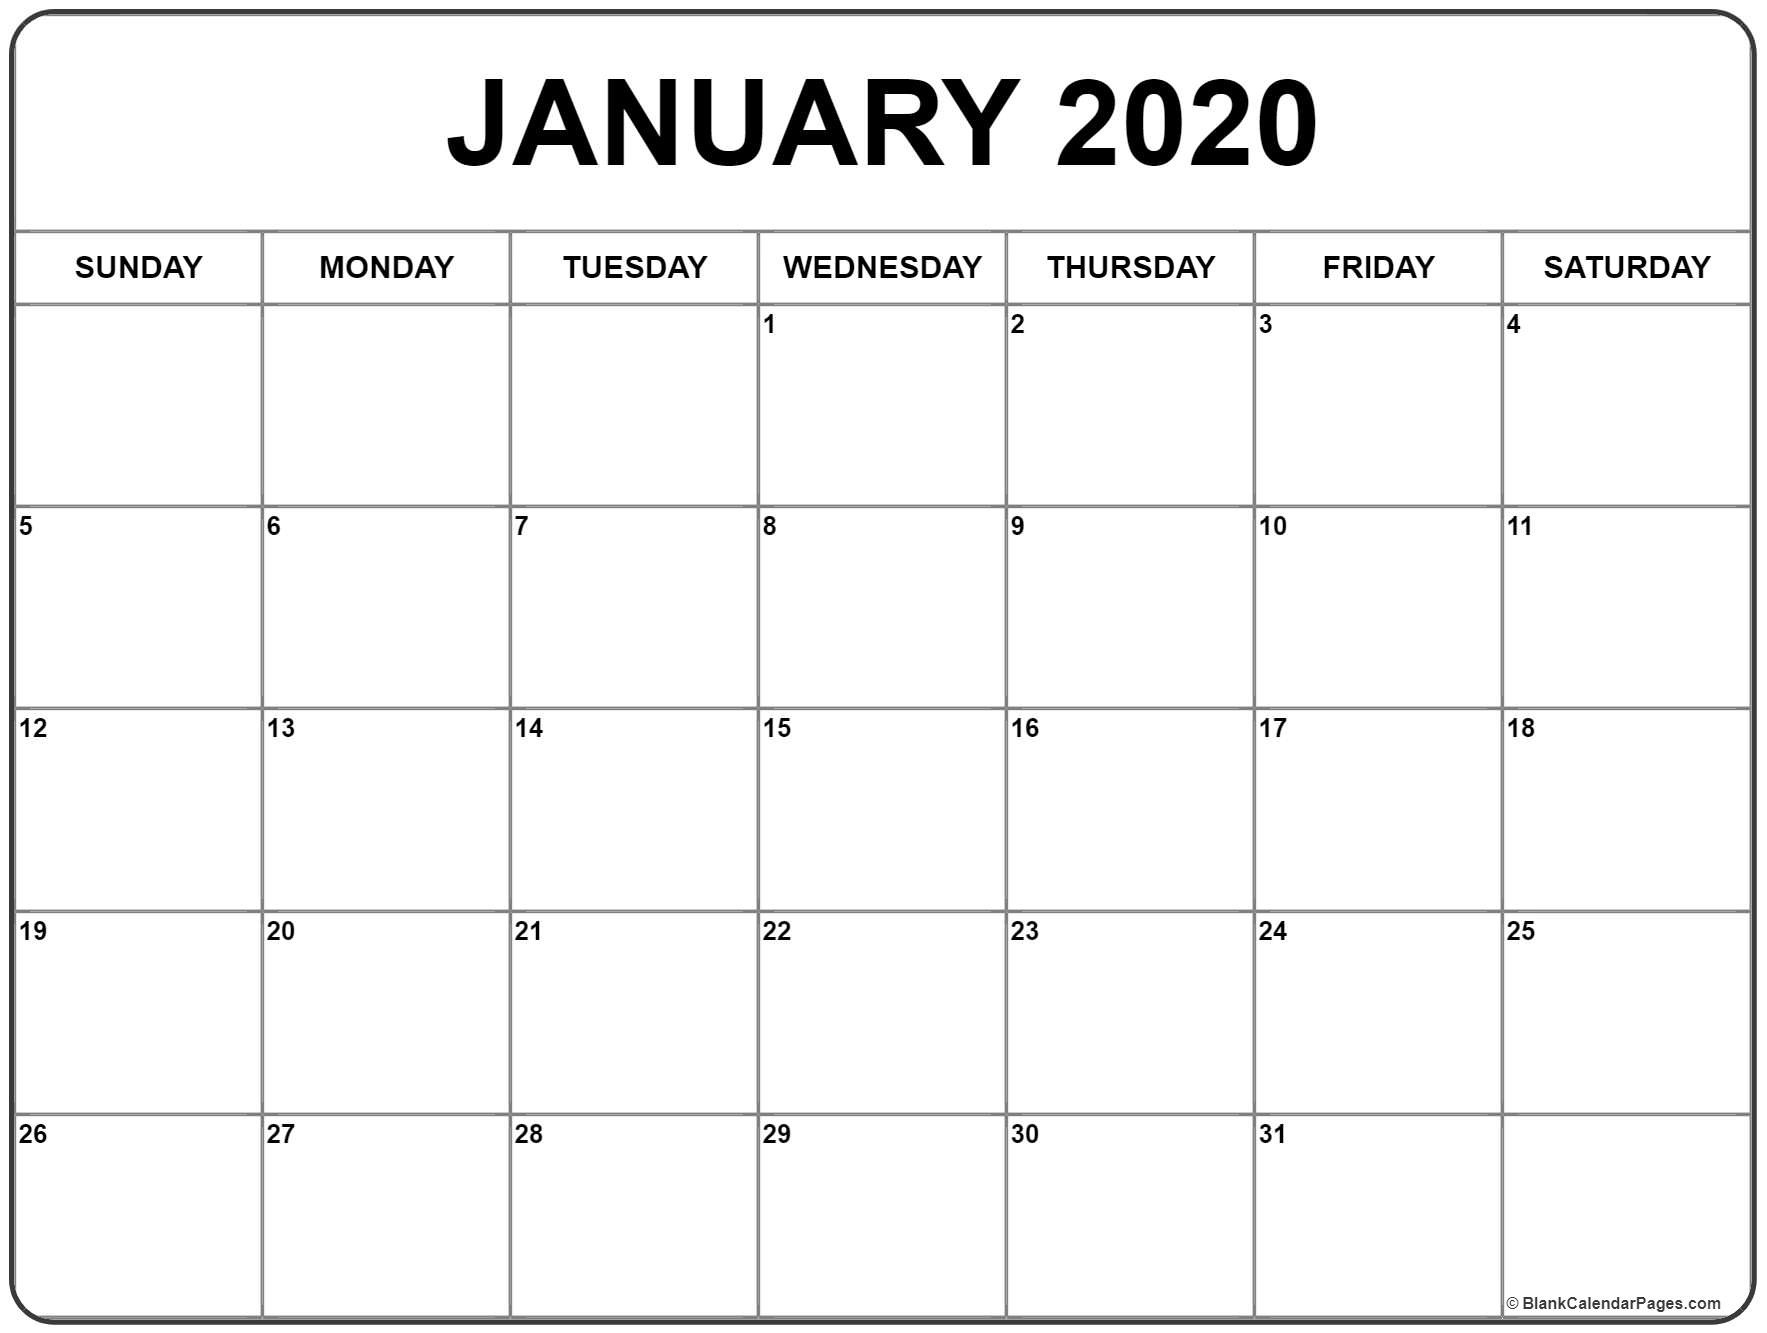 January Calendar Printable 2020 January 2020 Calendar Monthly